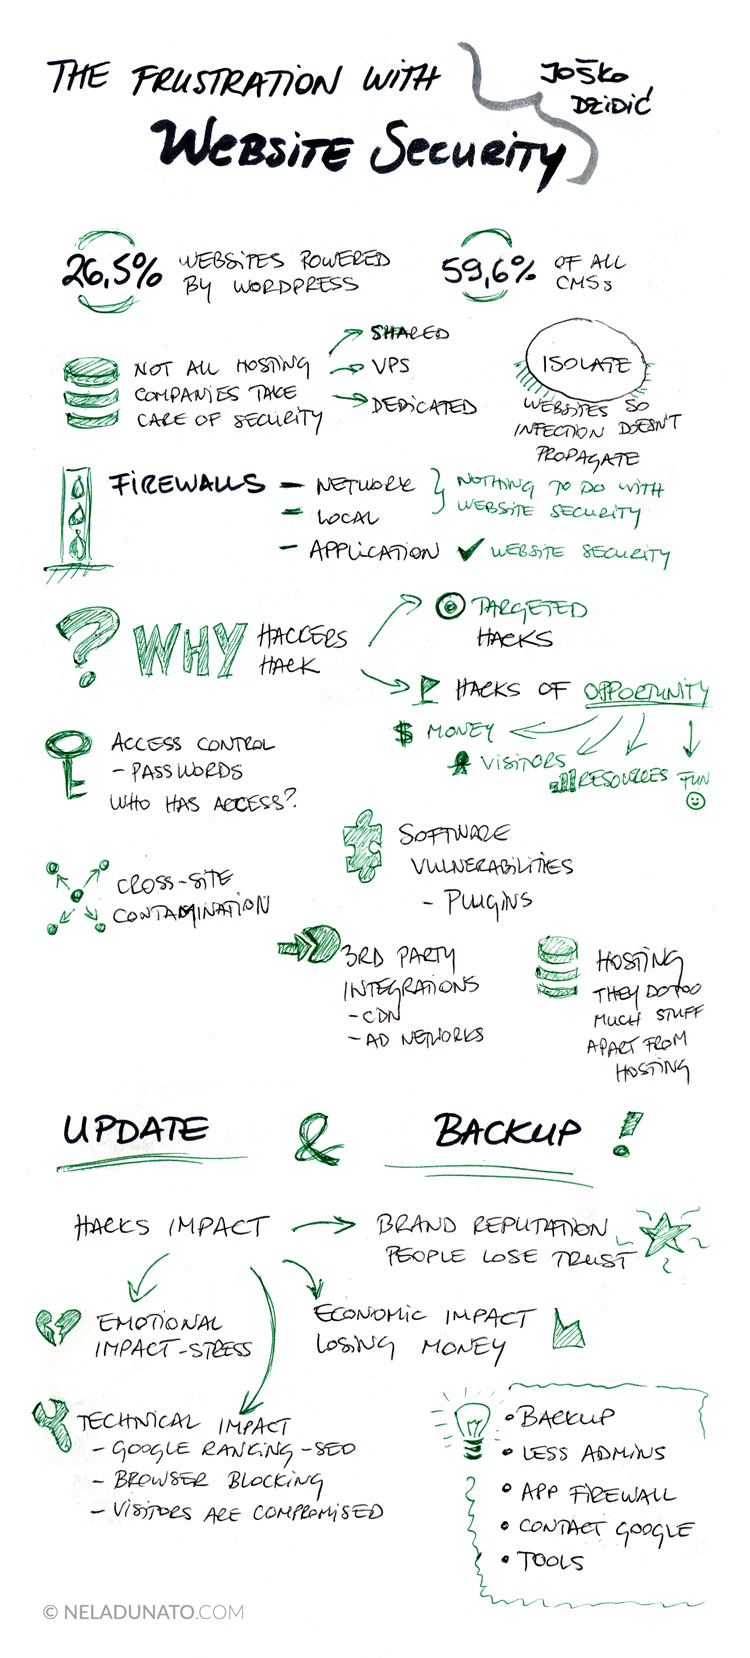 The frustration with website security - conference talk sketchnotes